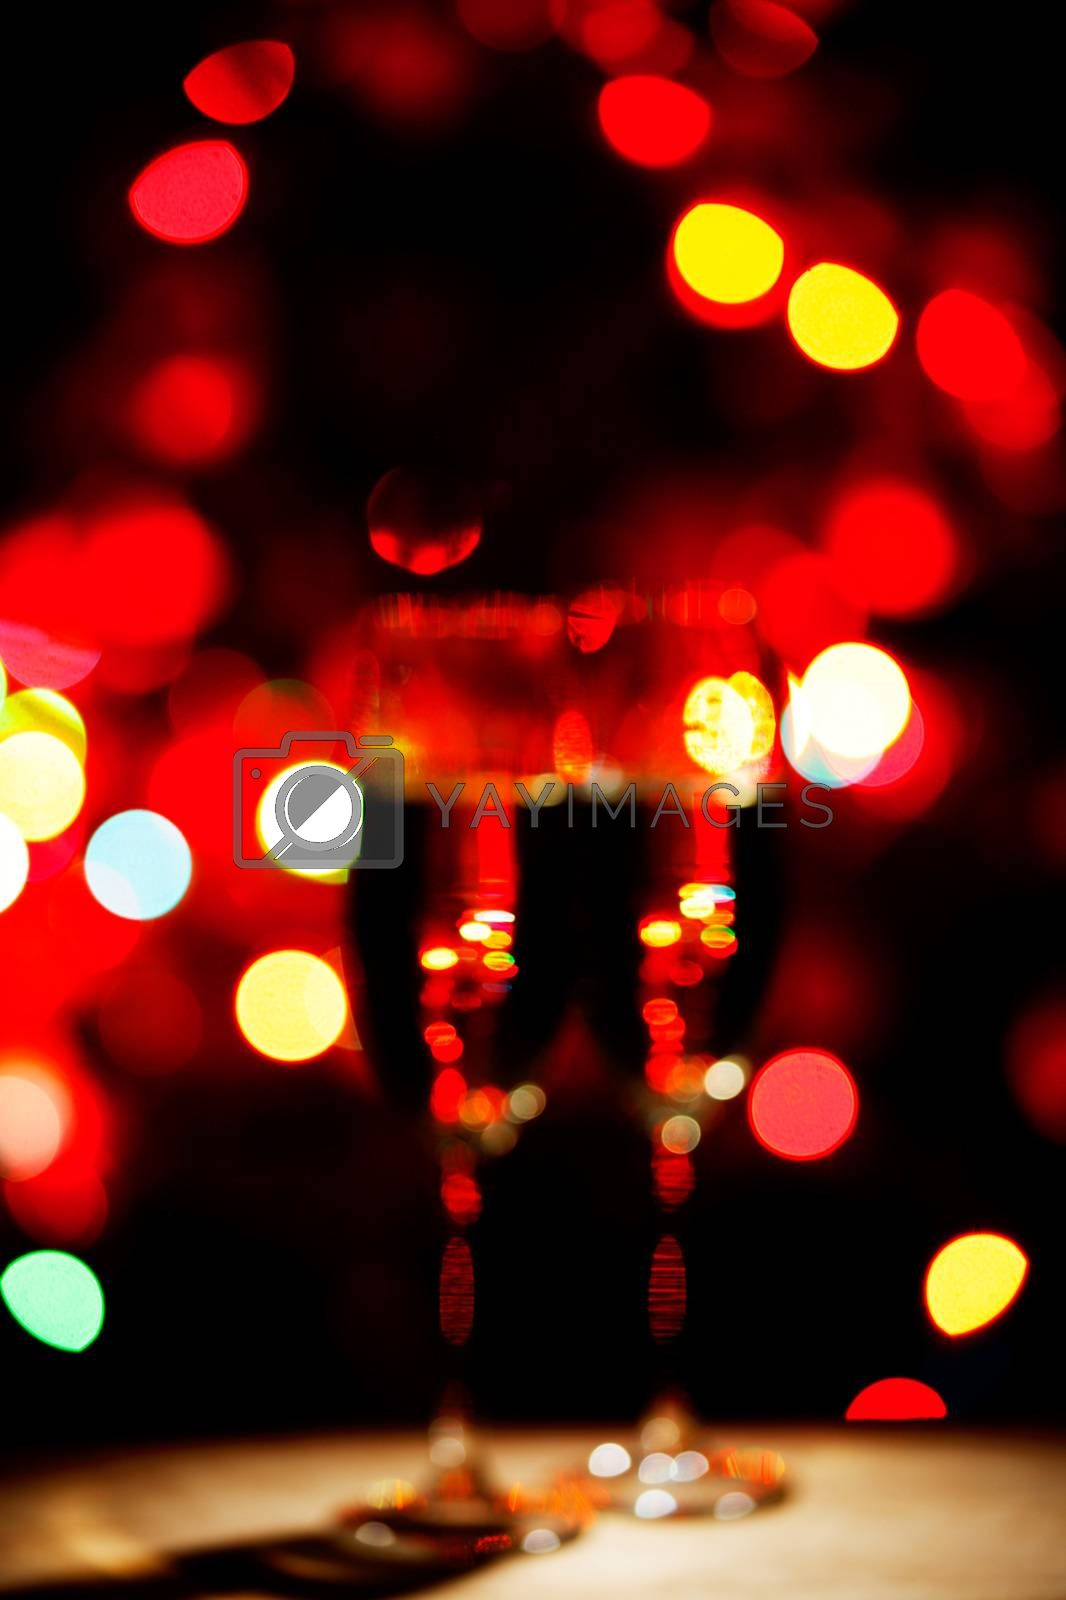 Flutes of champagne bokeh lights New year celebration concept